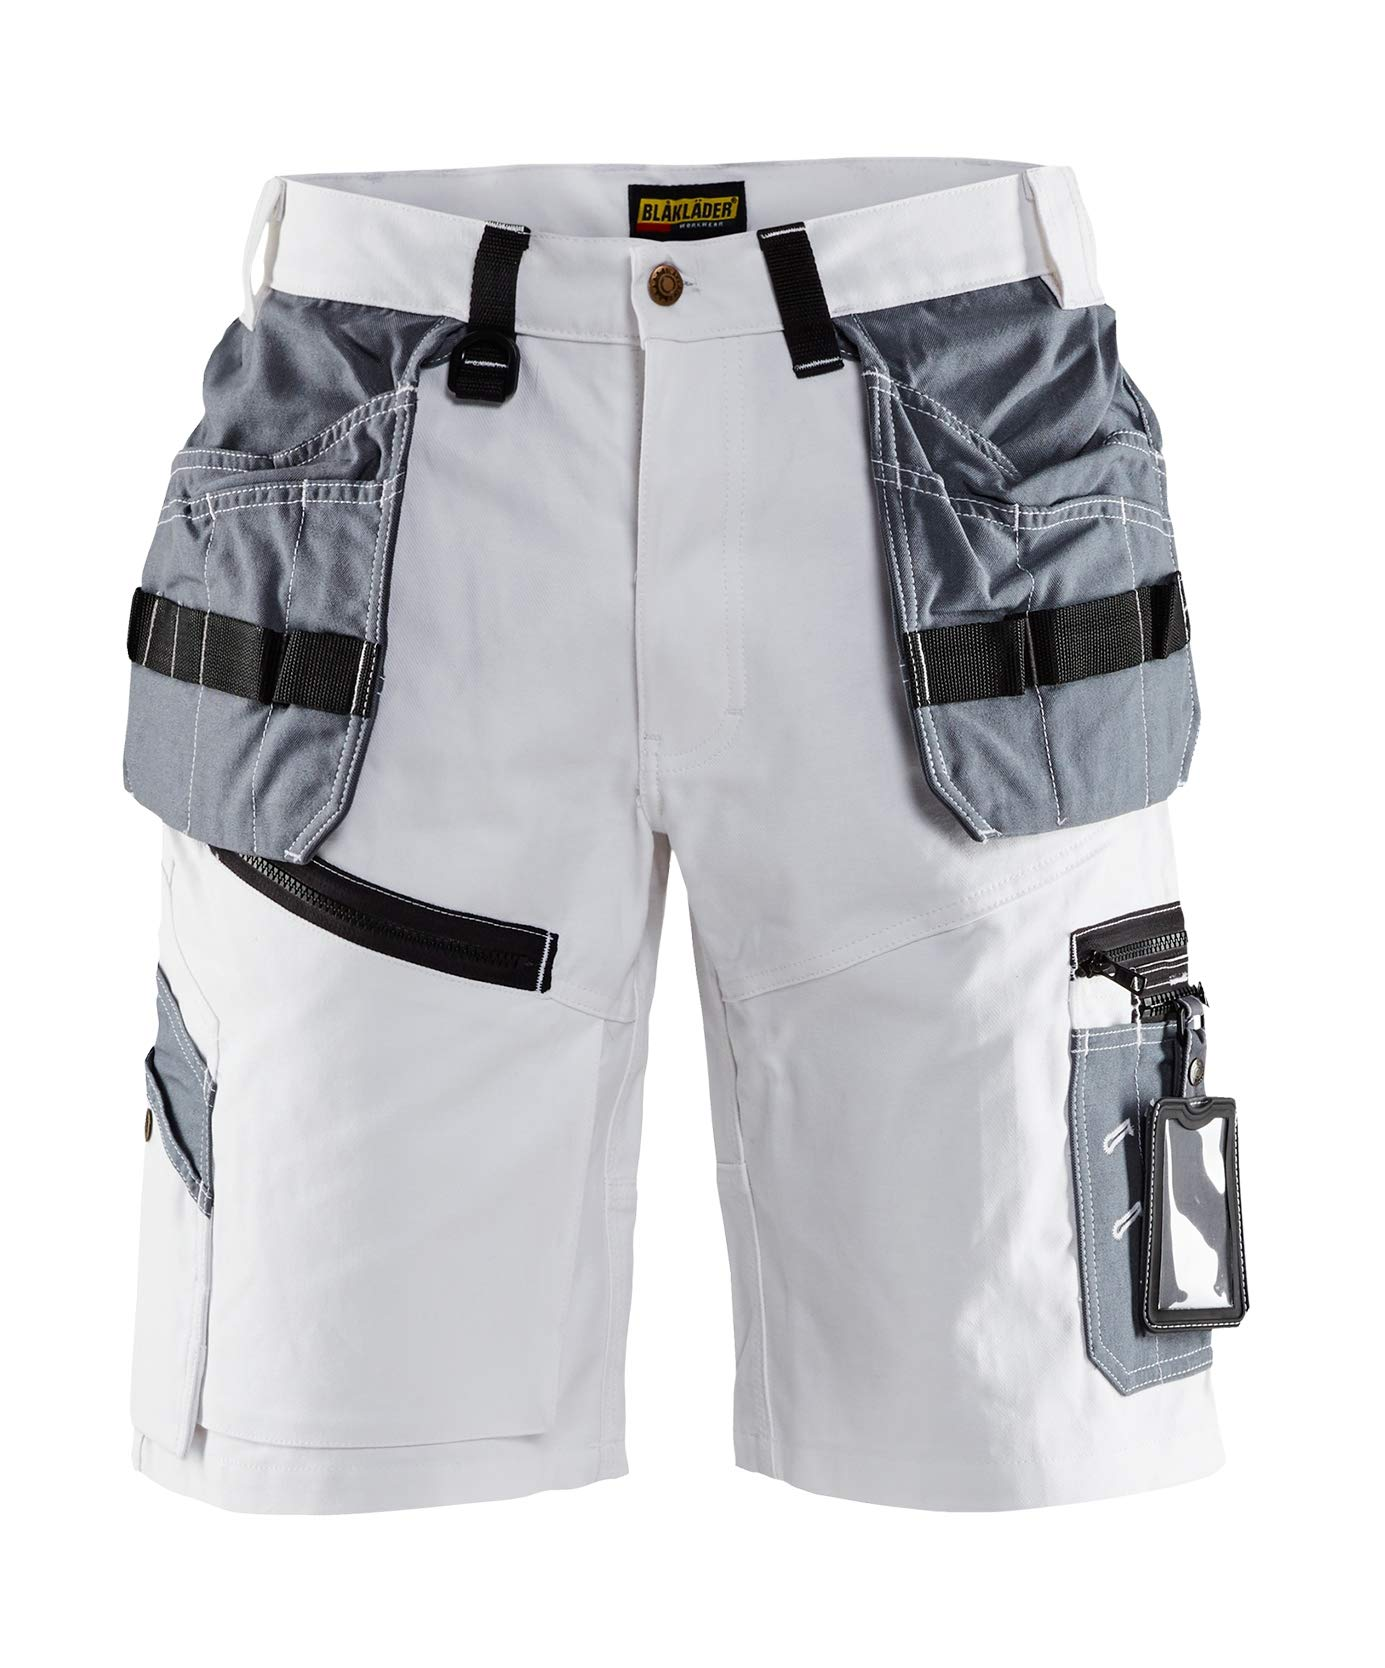 151212101094C44 Paint Shorts''x1500'' Size 30/32 (Metric Size C44) IN White/Grey